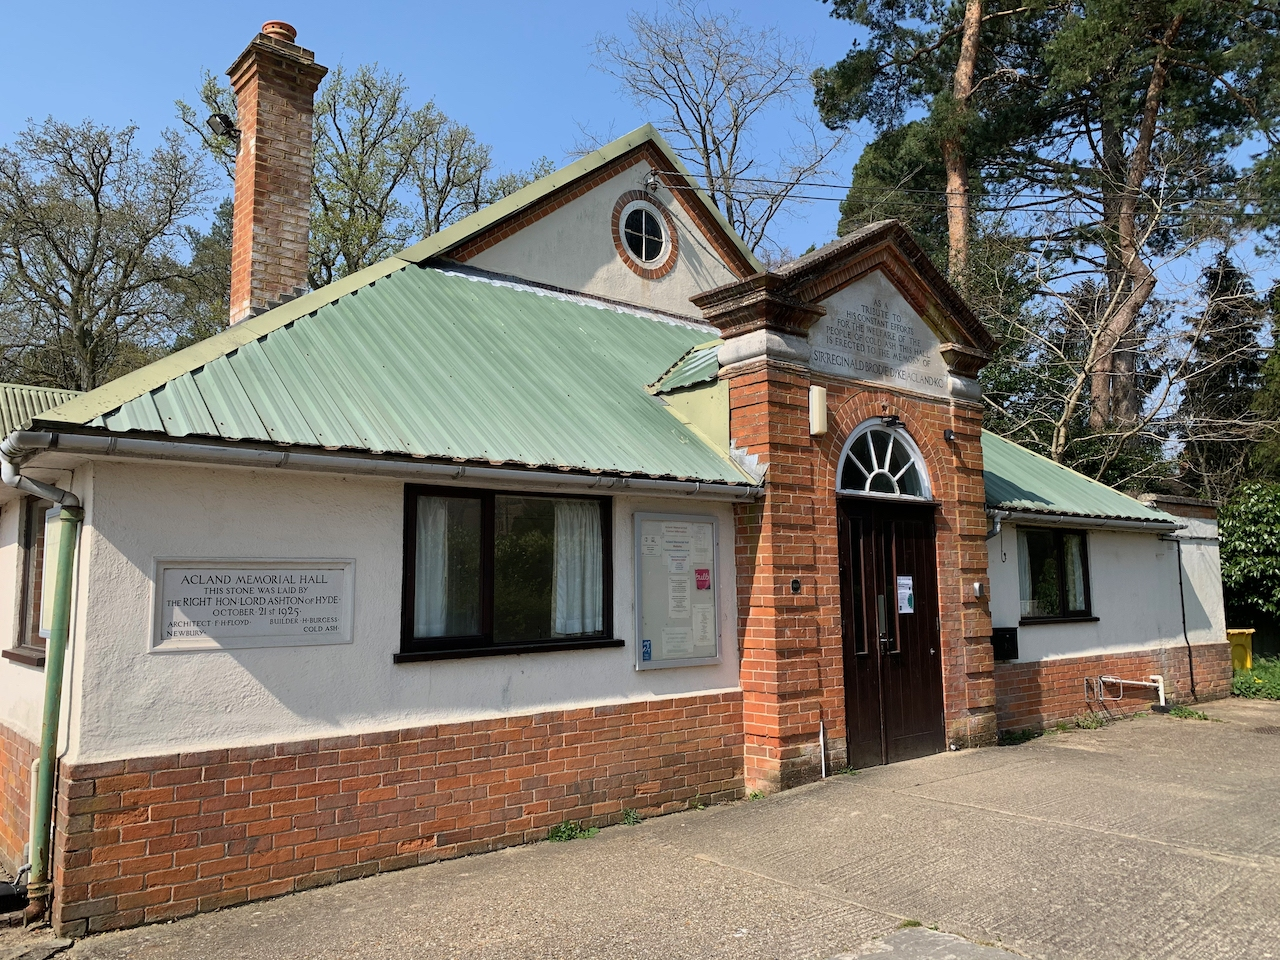 Acland Memorial Hall - a large brick built building with a metal roof.